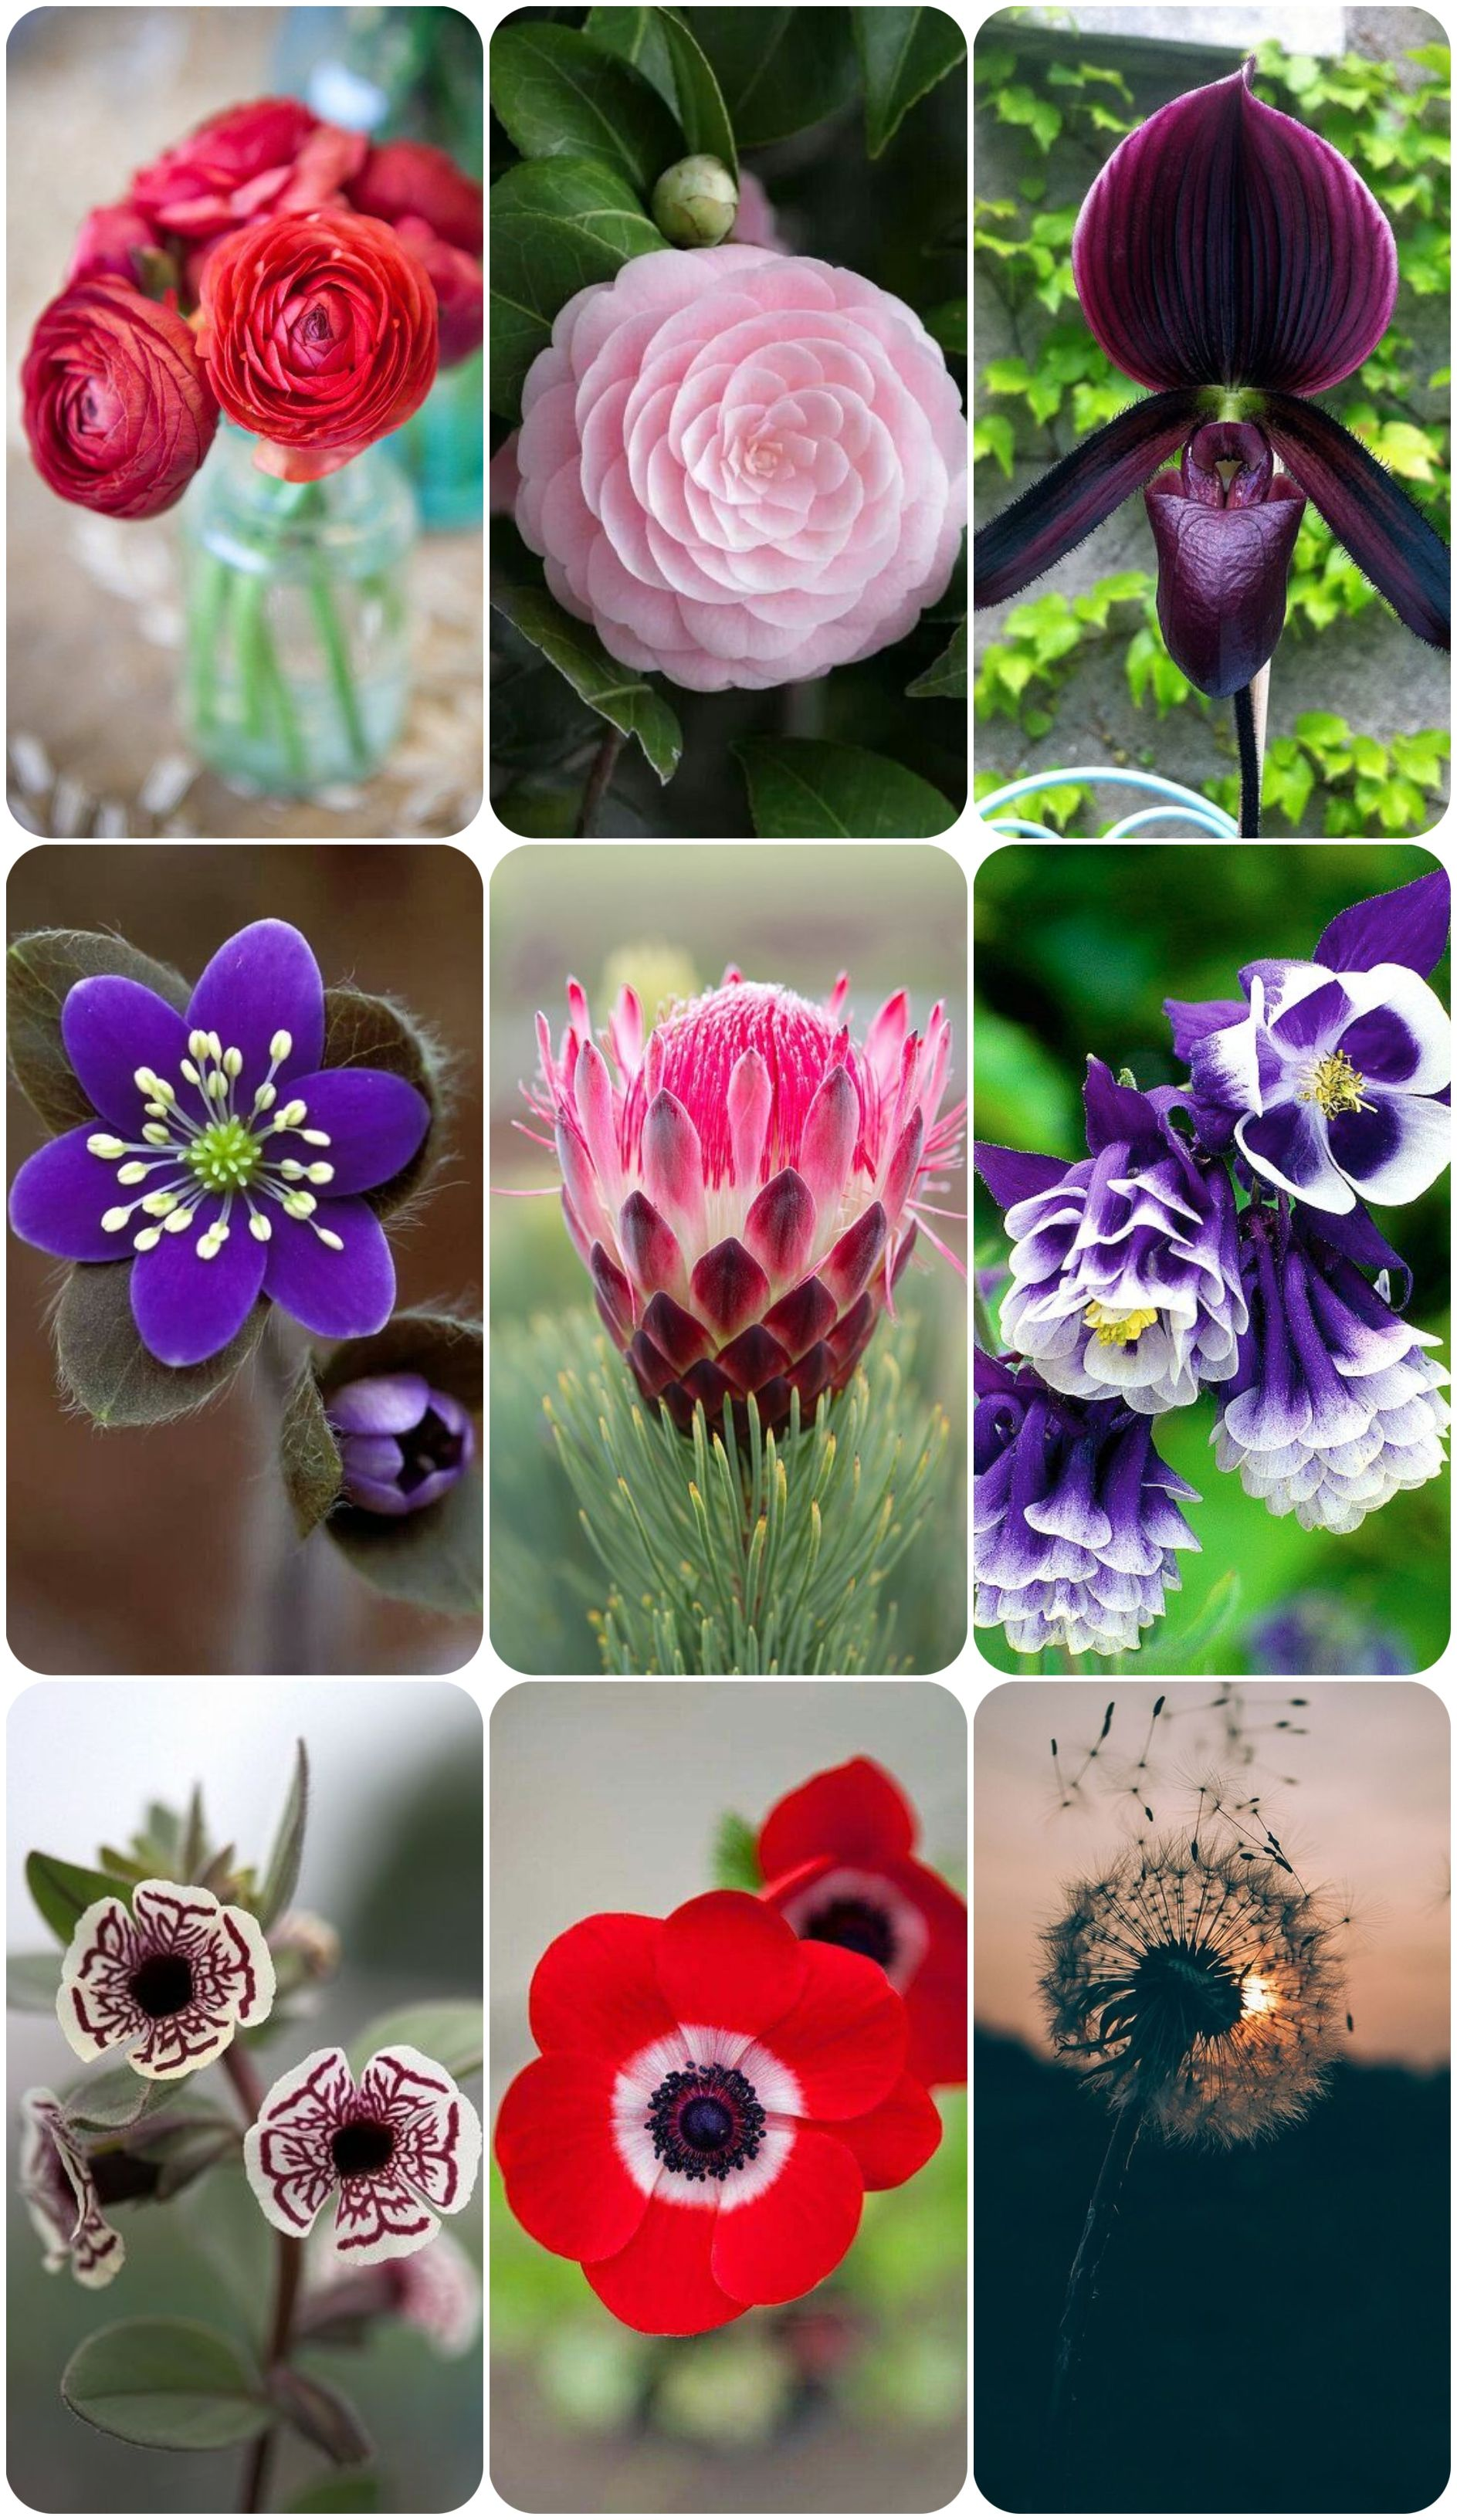 30 Most Beautiful Flowers In The World Flowers Pinterest Red